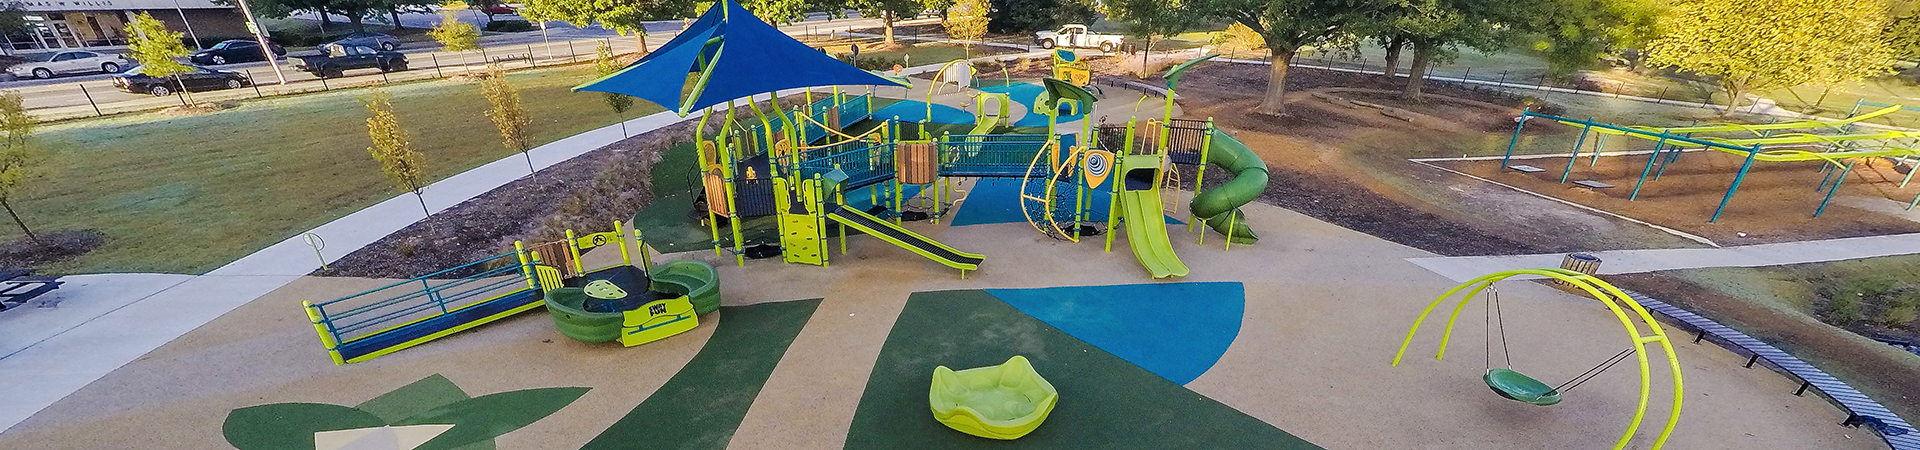 Town Common Playground